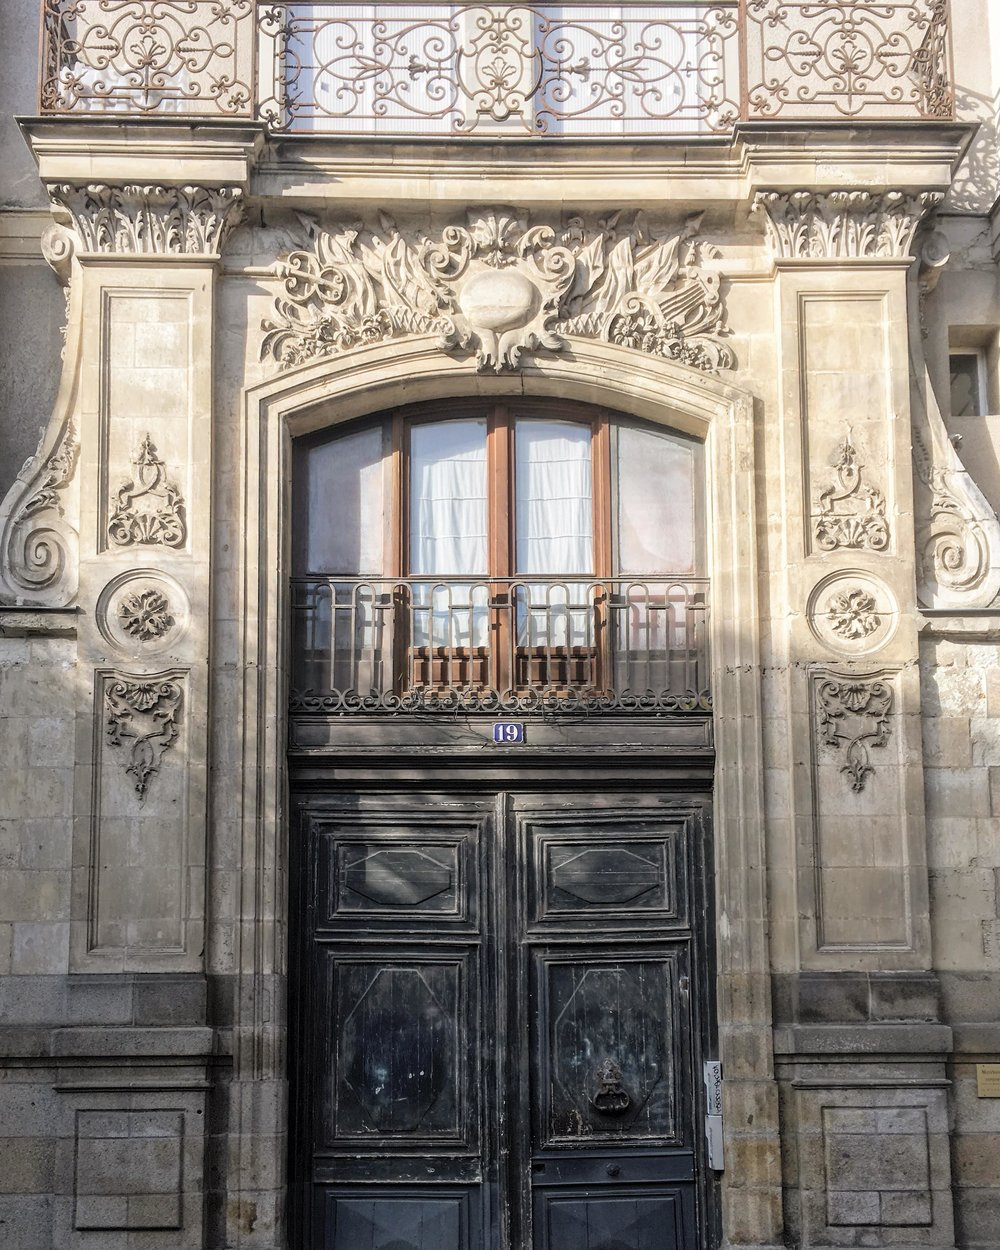 One last image, an ornate entry way in Rennes with my lucky number 19